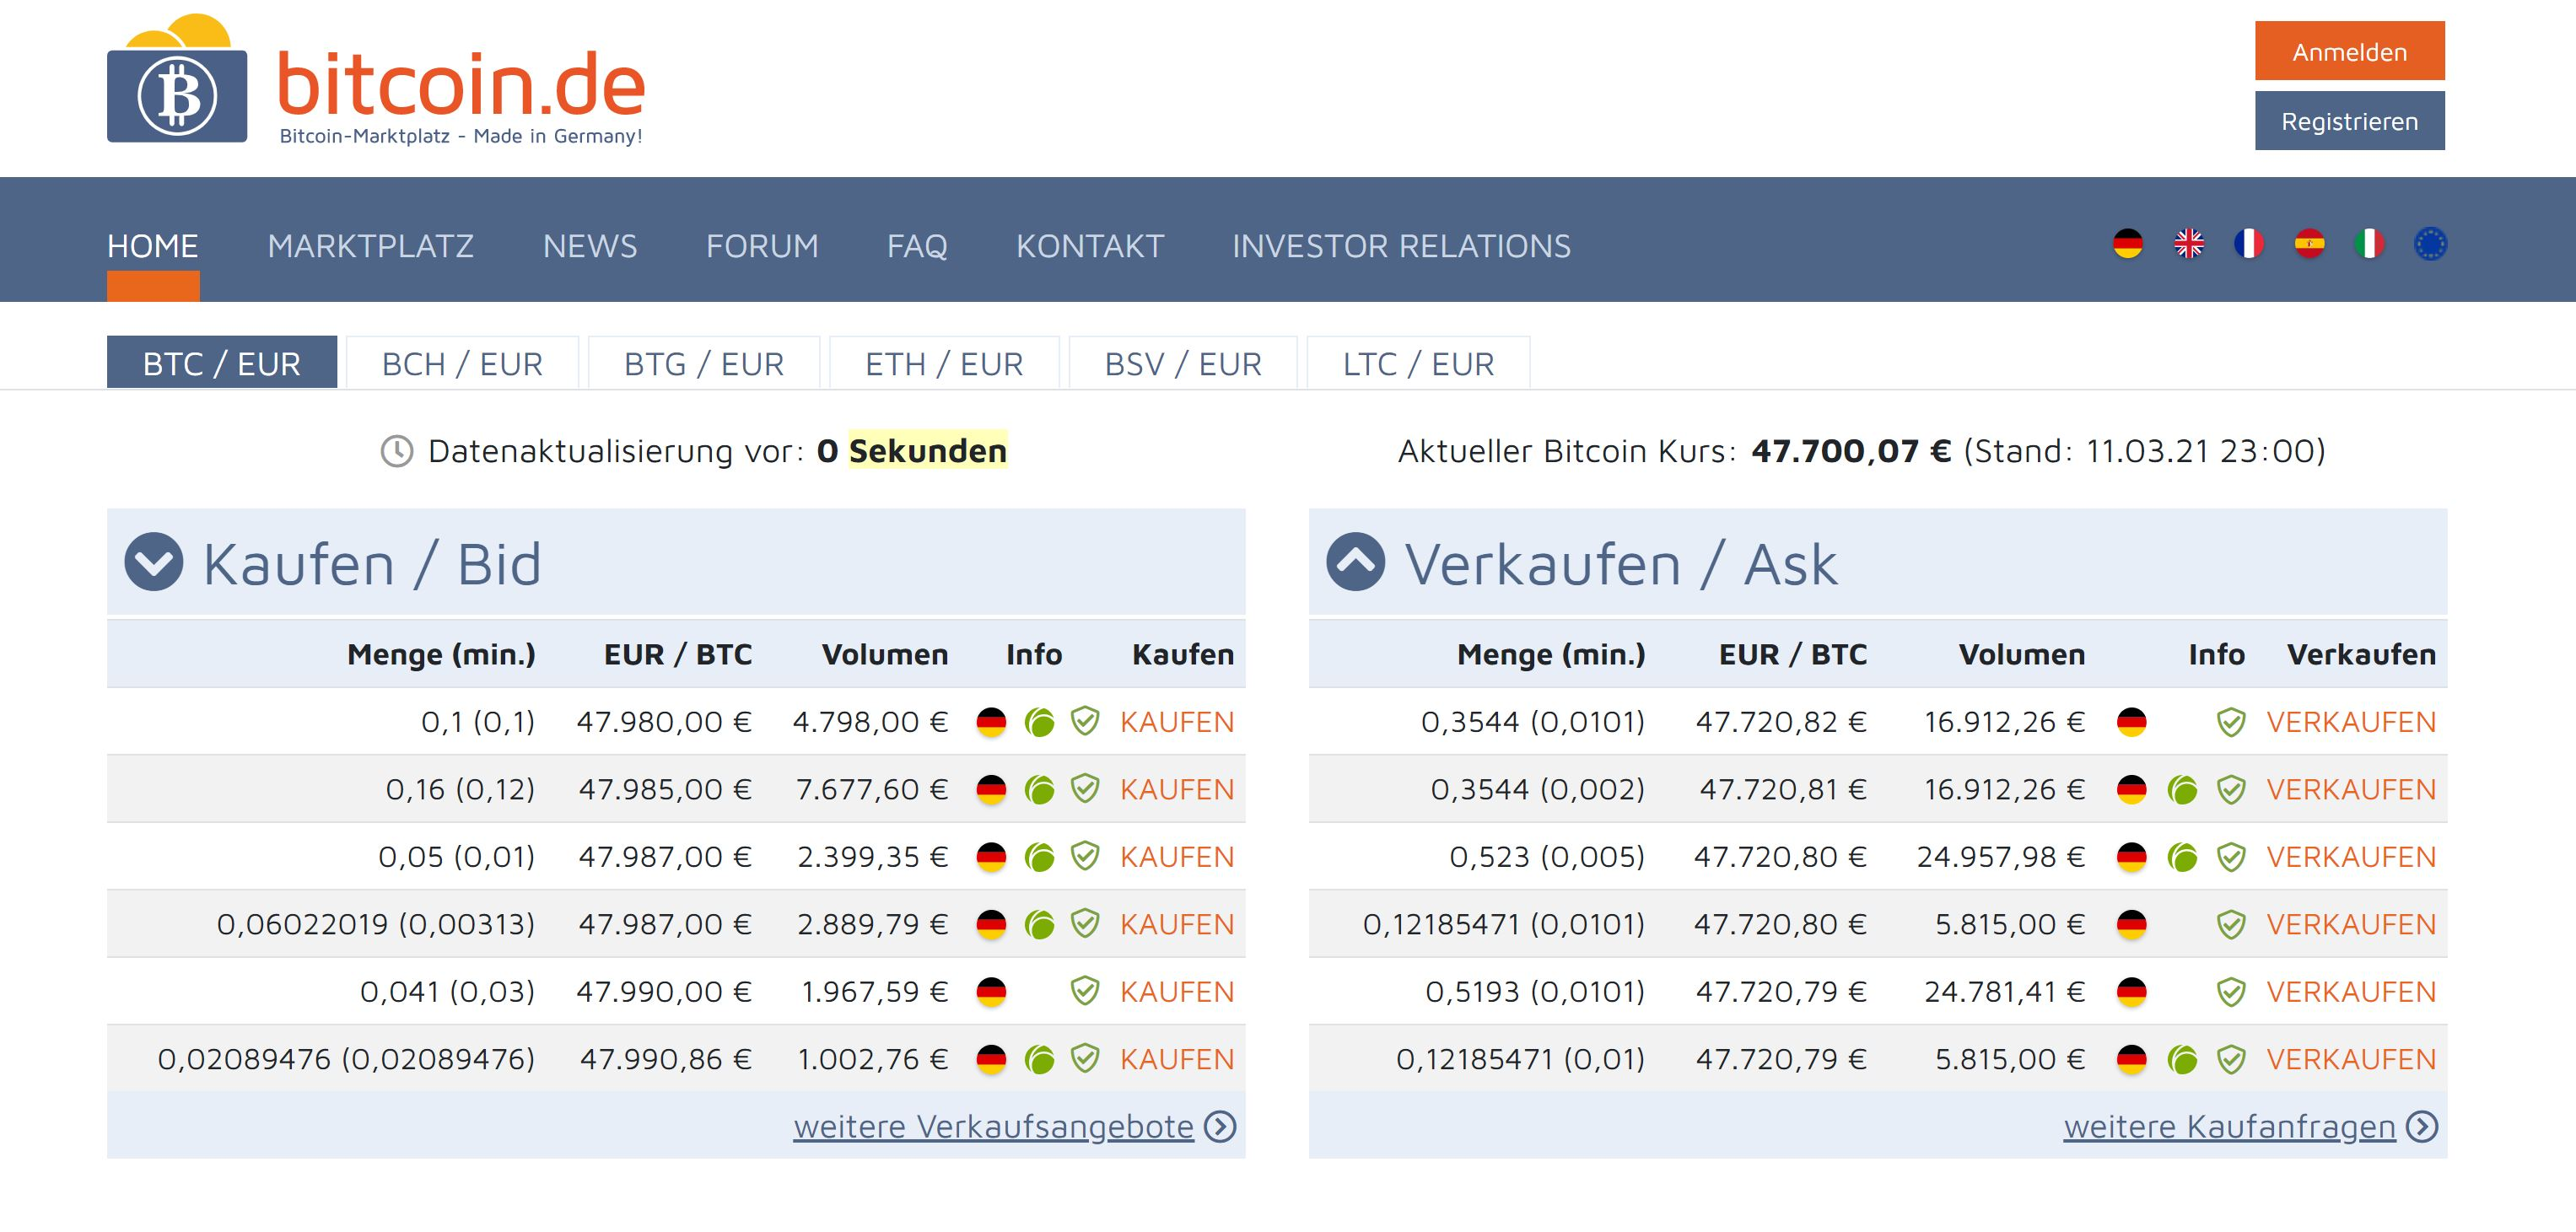 Bitcoin.de in the test, homepage and logo